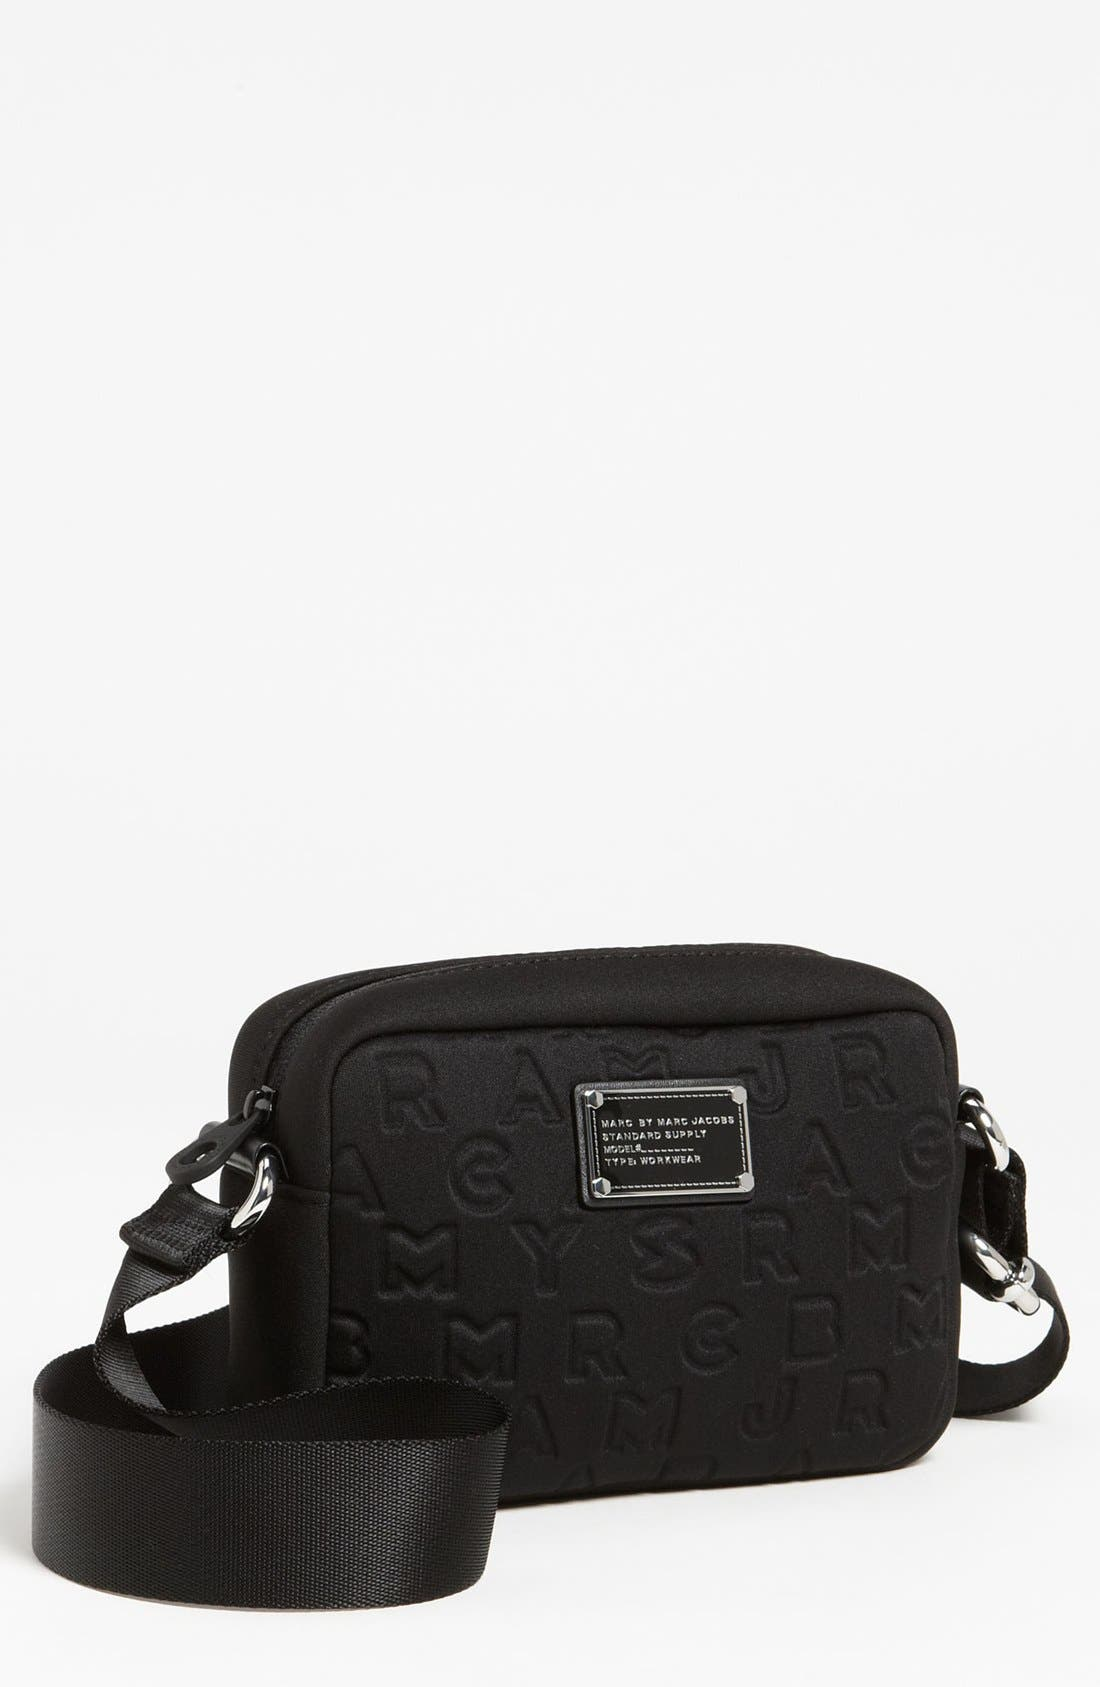 Alternate Image 1 Selected - MARC BY MARC JACOBS 'Dreamy' Camera Bag